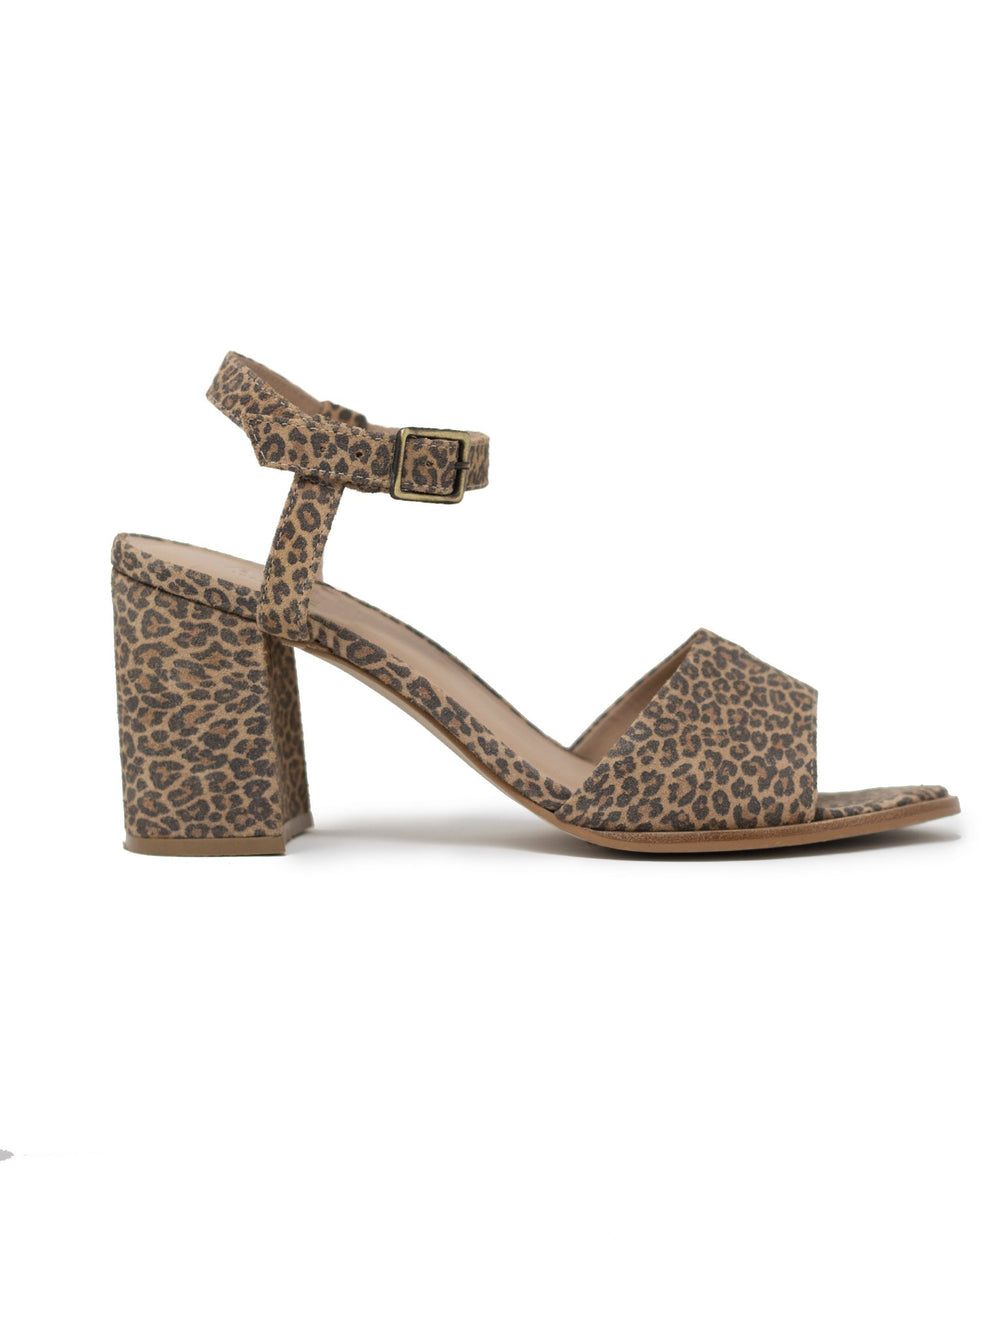 Lifestyle - Leopard Suede